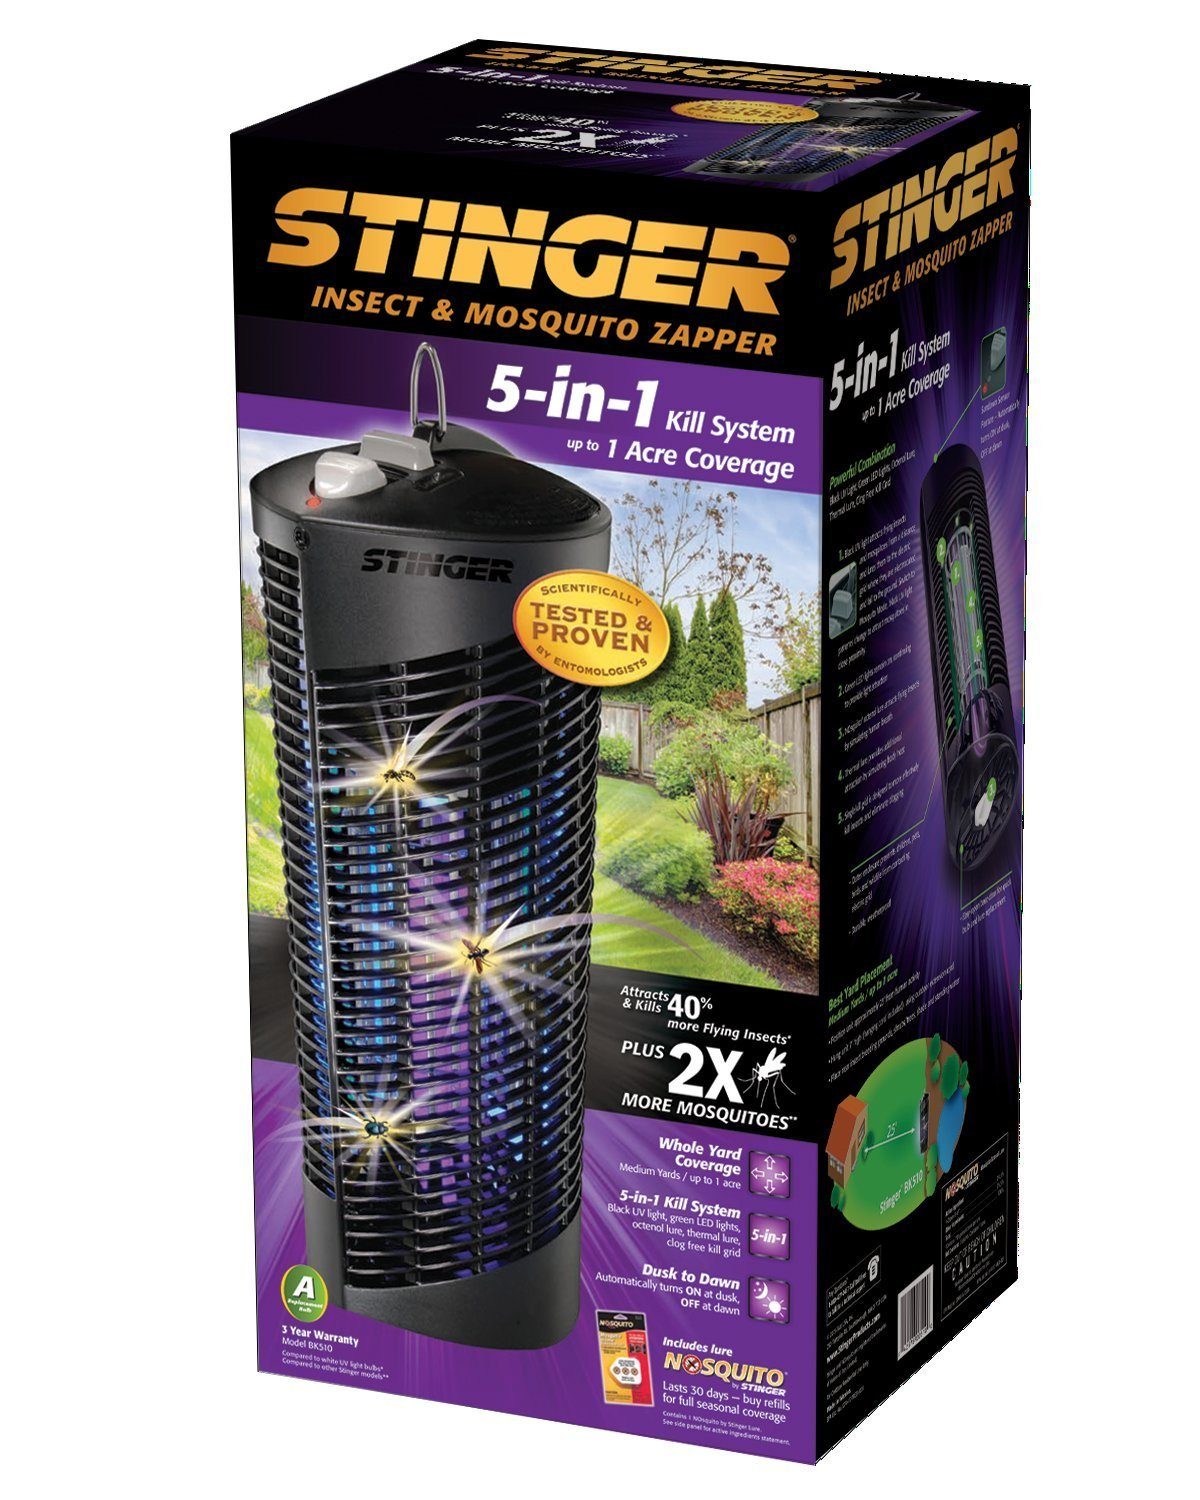 Stinger 5-in-1 Insect & Mosquito Zapper